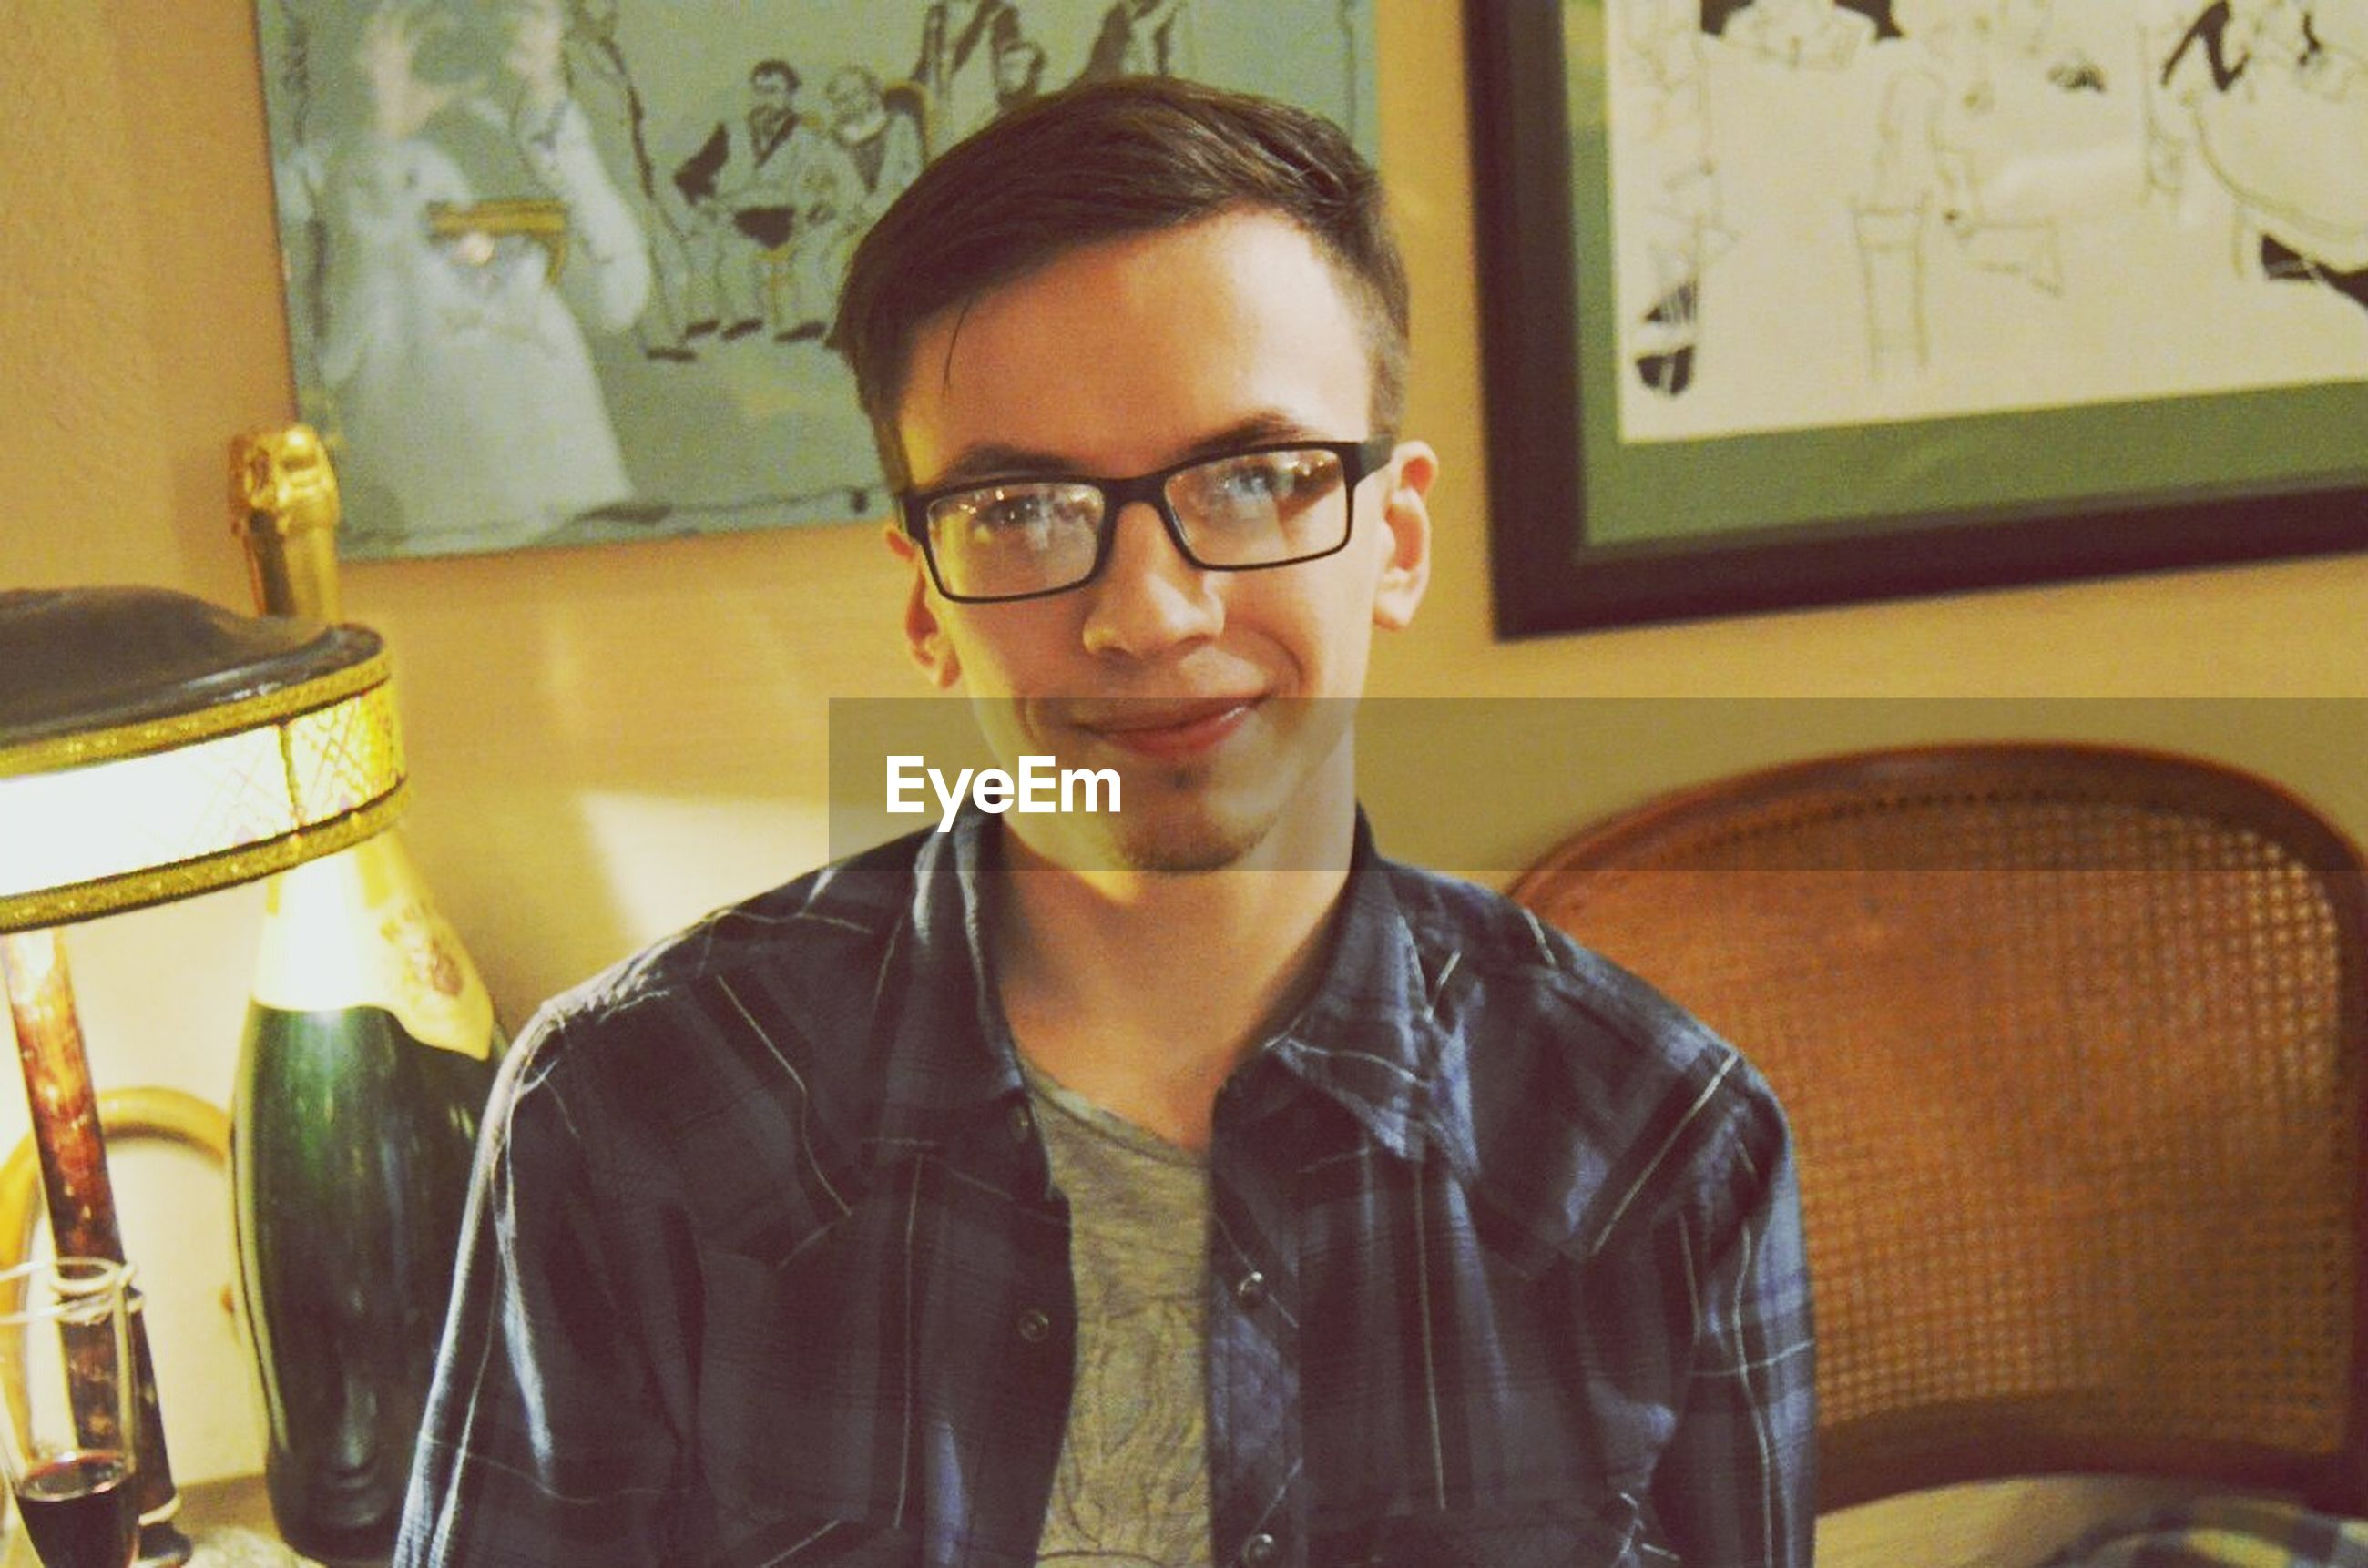 indoors, looking at camera, lifestyles, casual clothing, portrait, person, young adult, front view, young men, waist up, leisure activity, headshot, home interior, eyeglasses, standing, table, restaurant